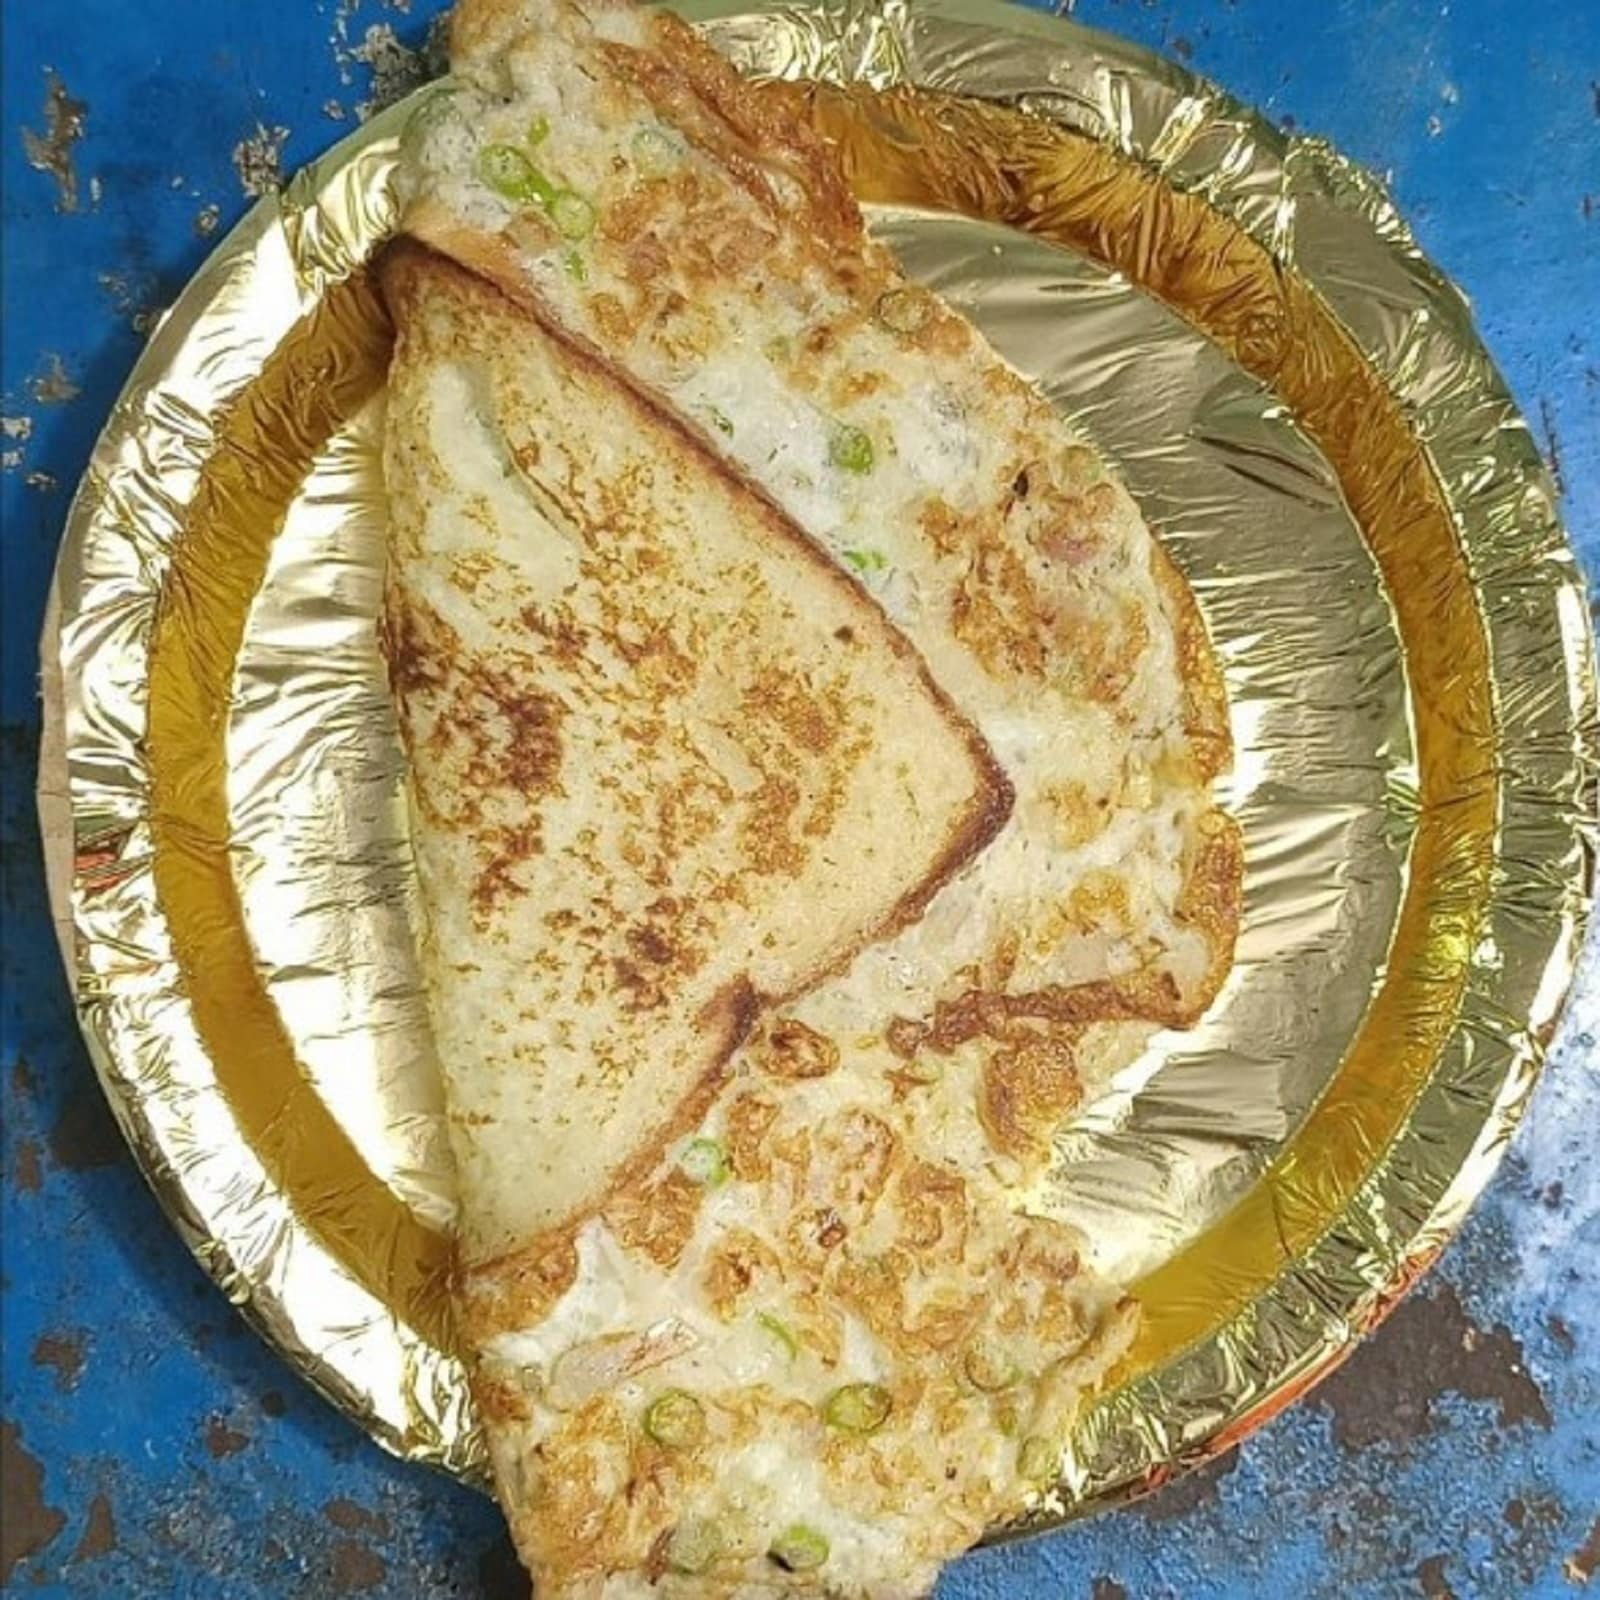 40 years to sell eggs come to kanti nagar to eat special omelette at raju anda bhandar rada